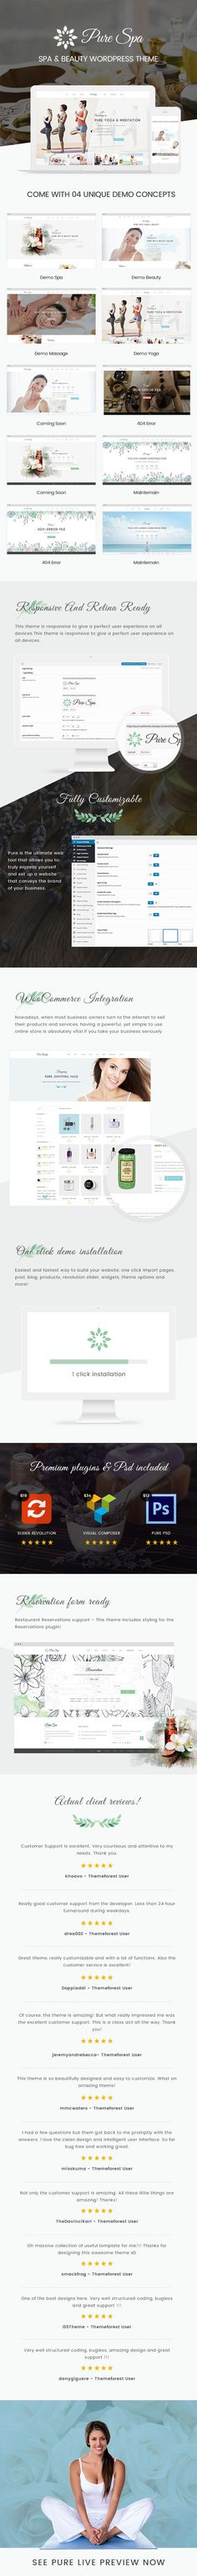 PURE is perfectly responsive beautiful spa and beauty WordPress theme for beauty salons, wellness centers, SPA, massage and other health and beauty related websites. PURE will certainly take your business to the next level with its elegant design combined with the latest techniques in website design.